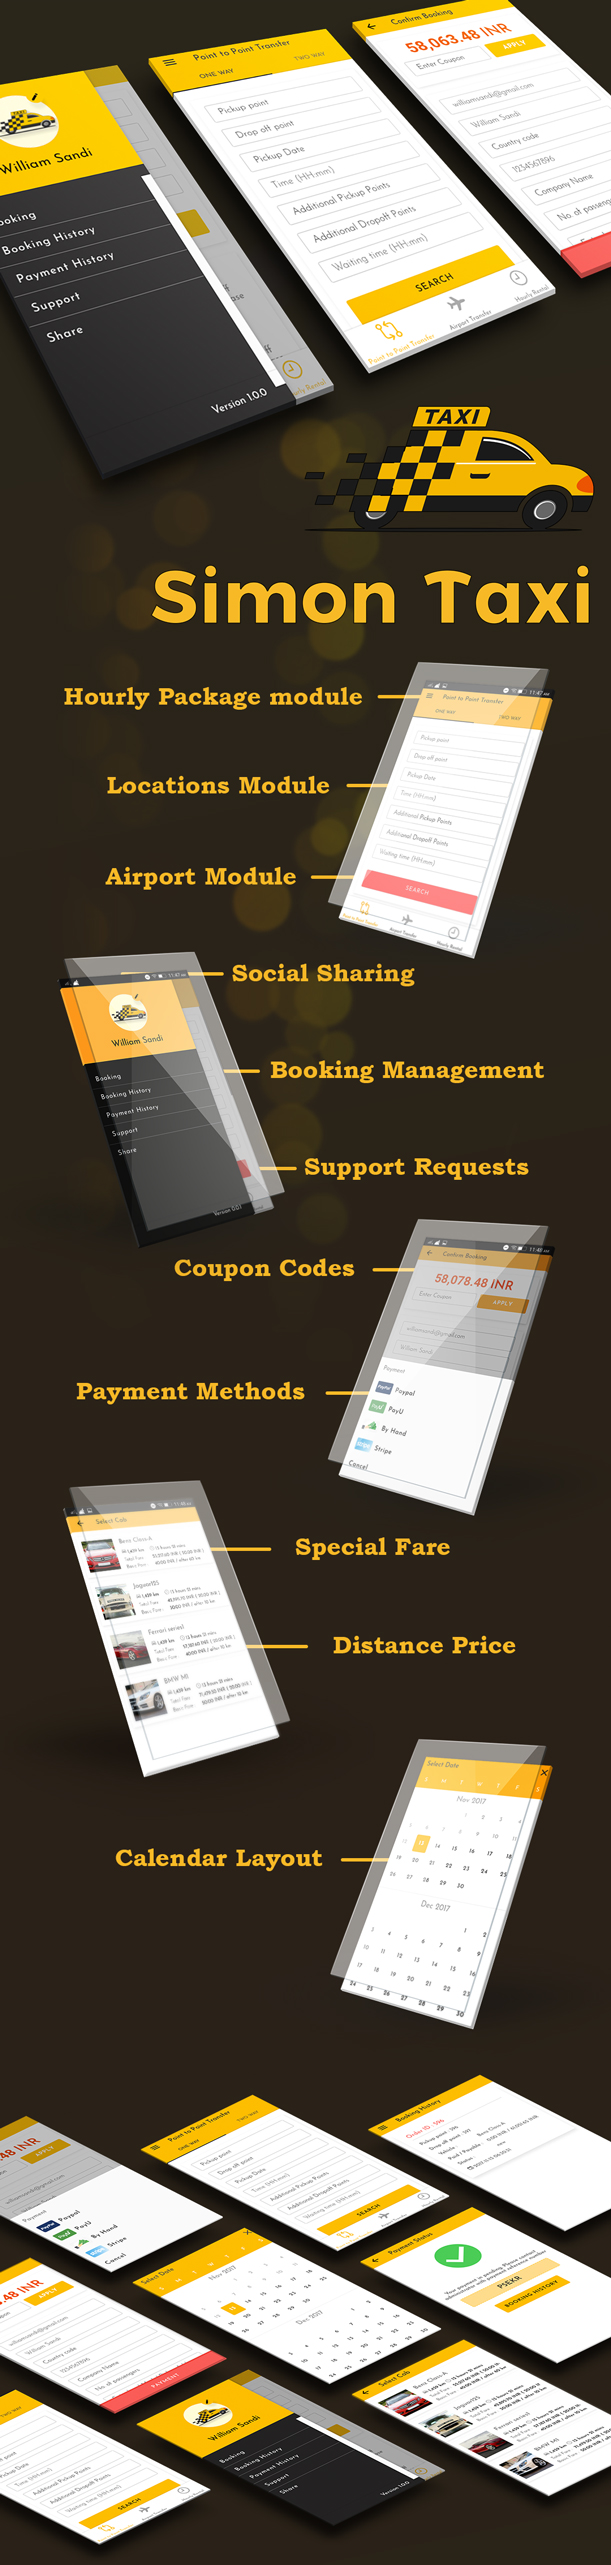 taxi-mobile-app